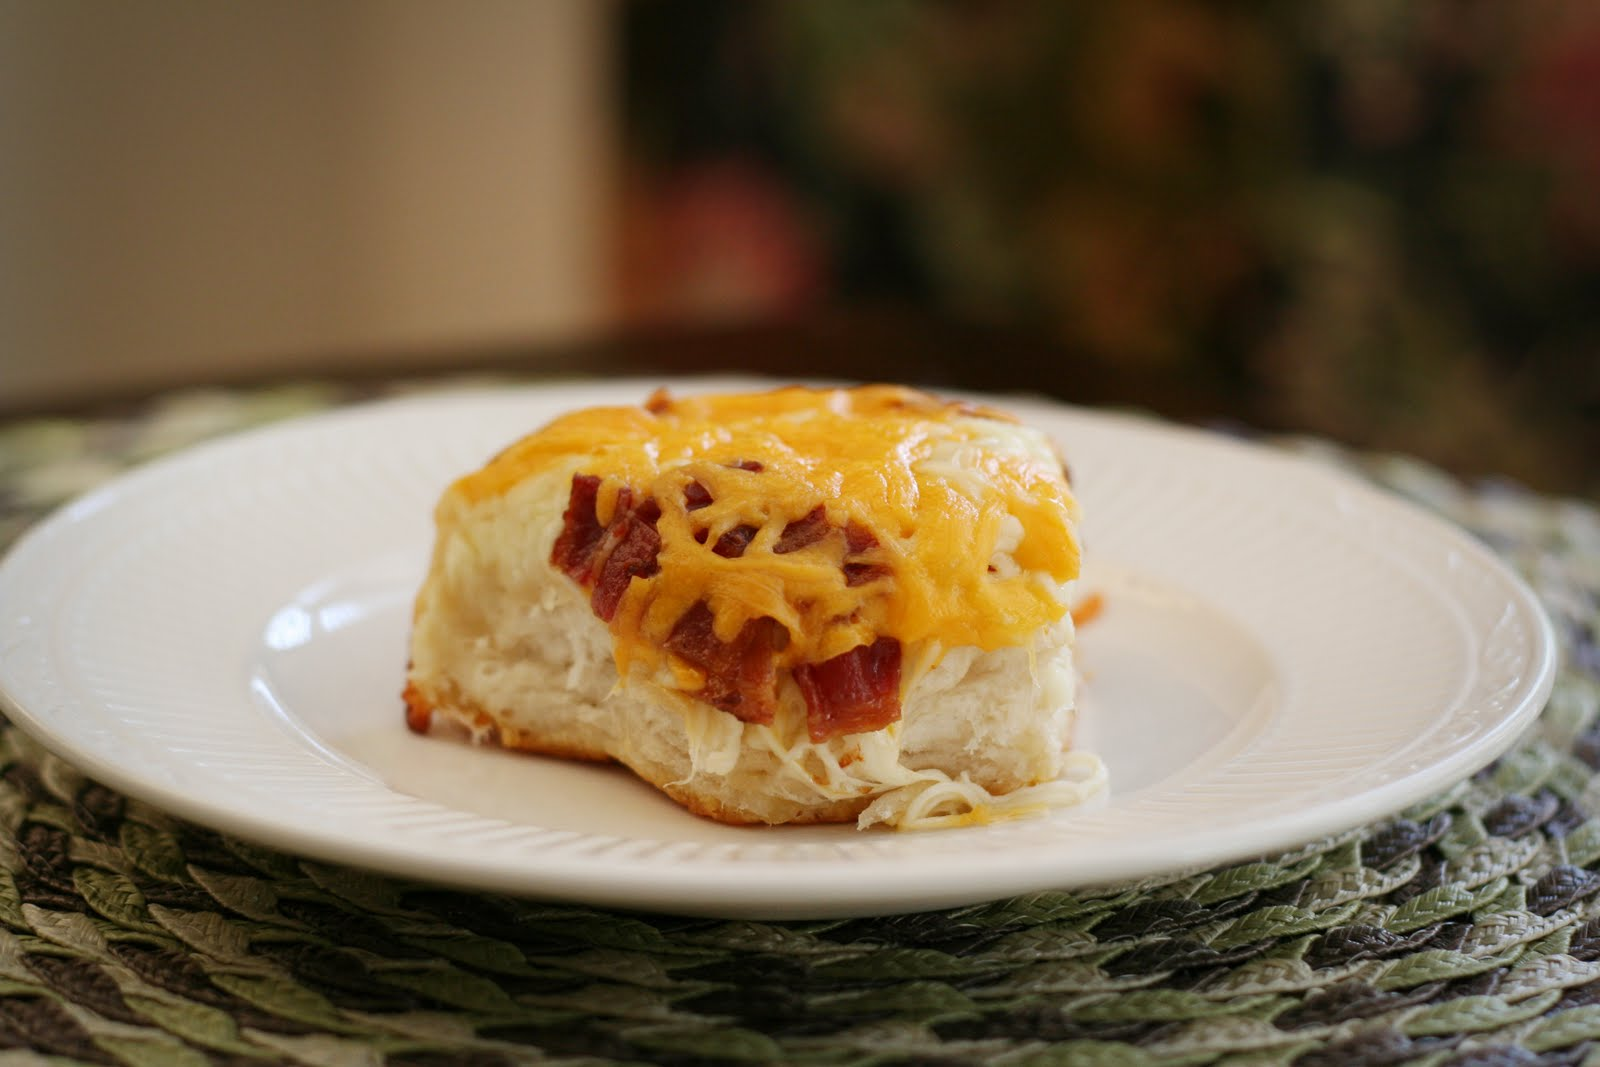 bacon bacon bacon i love bacon i love cheese too and biscuits and to ...